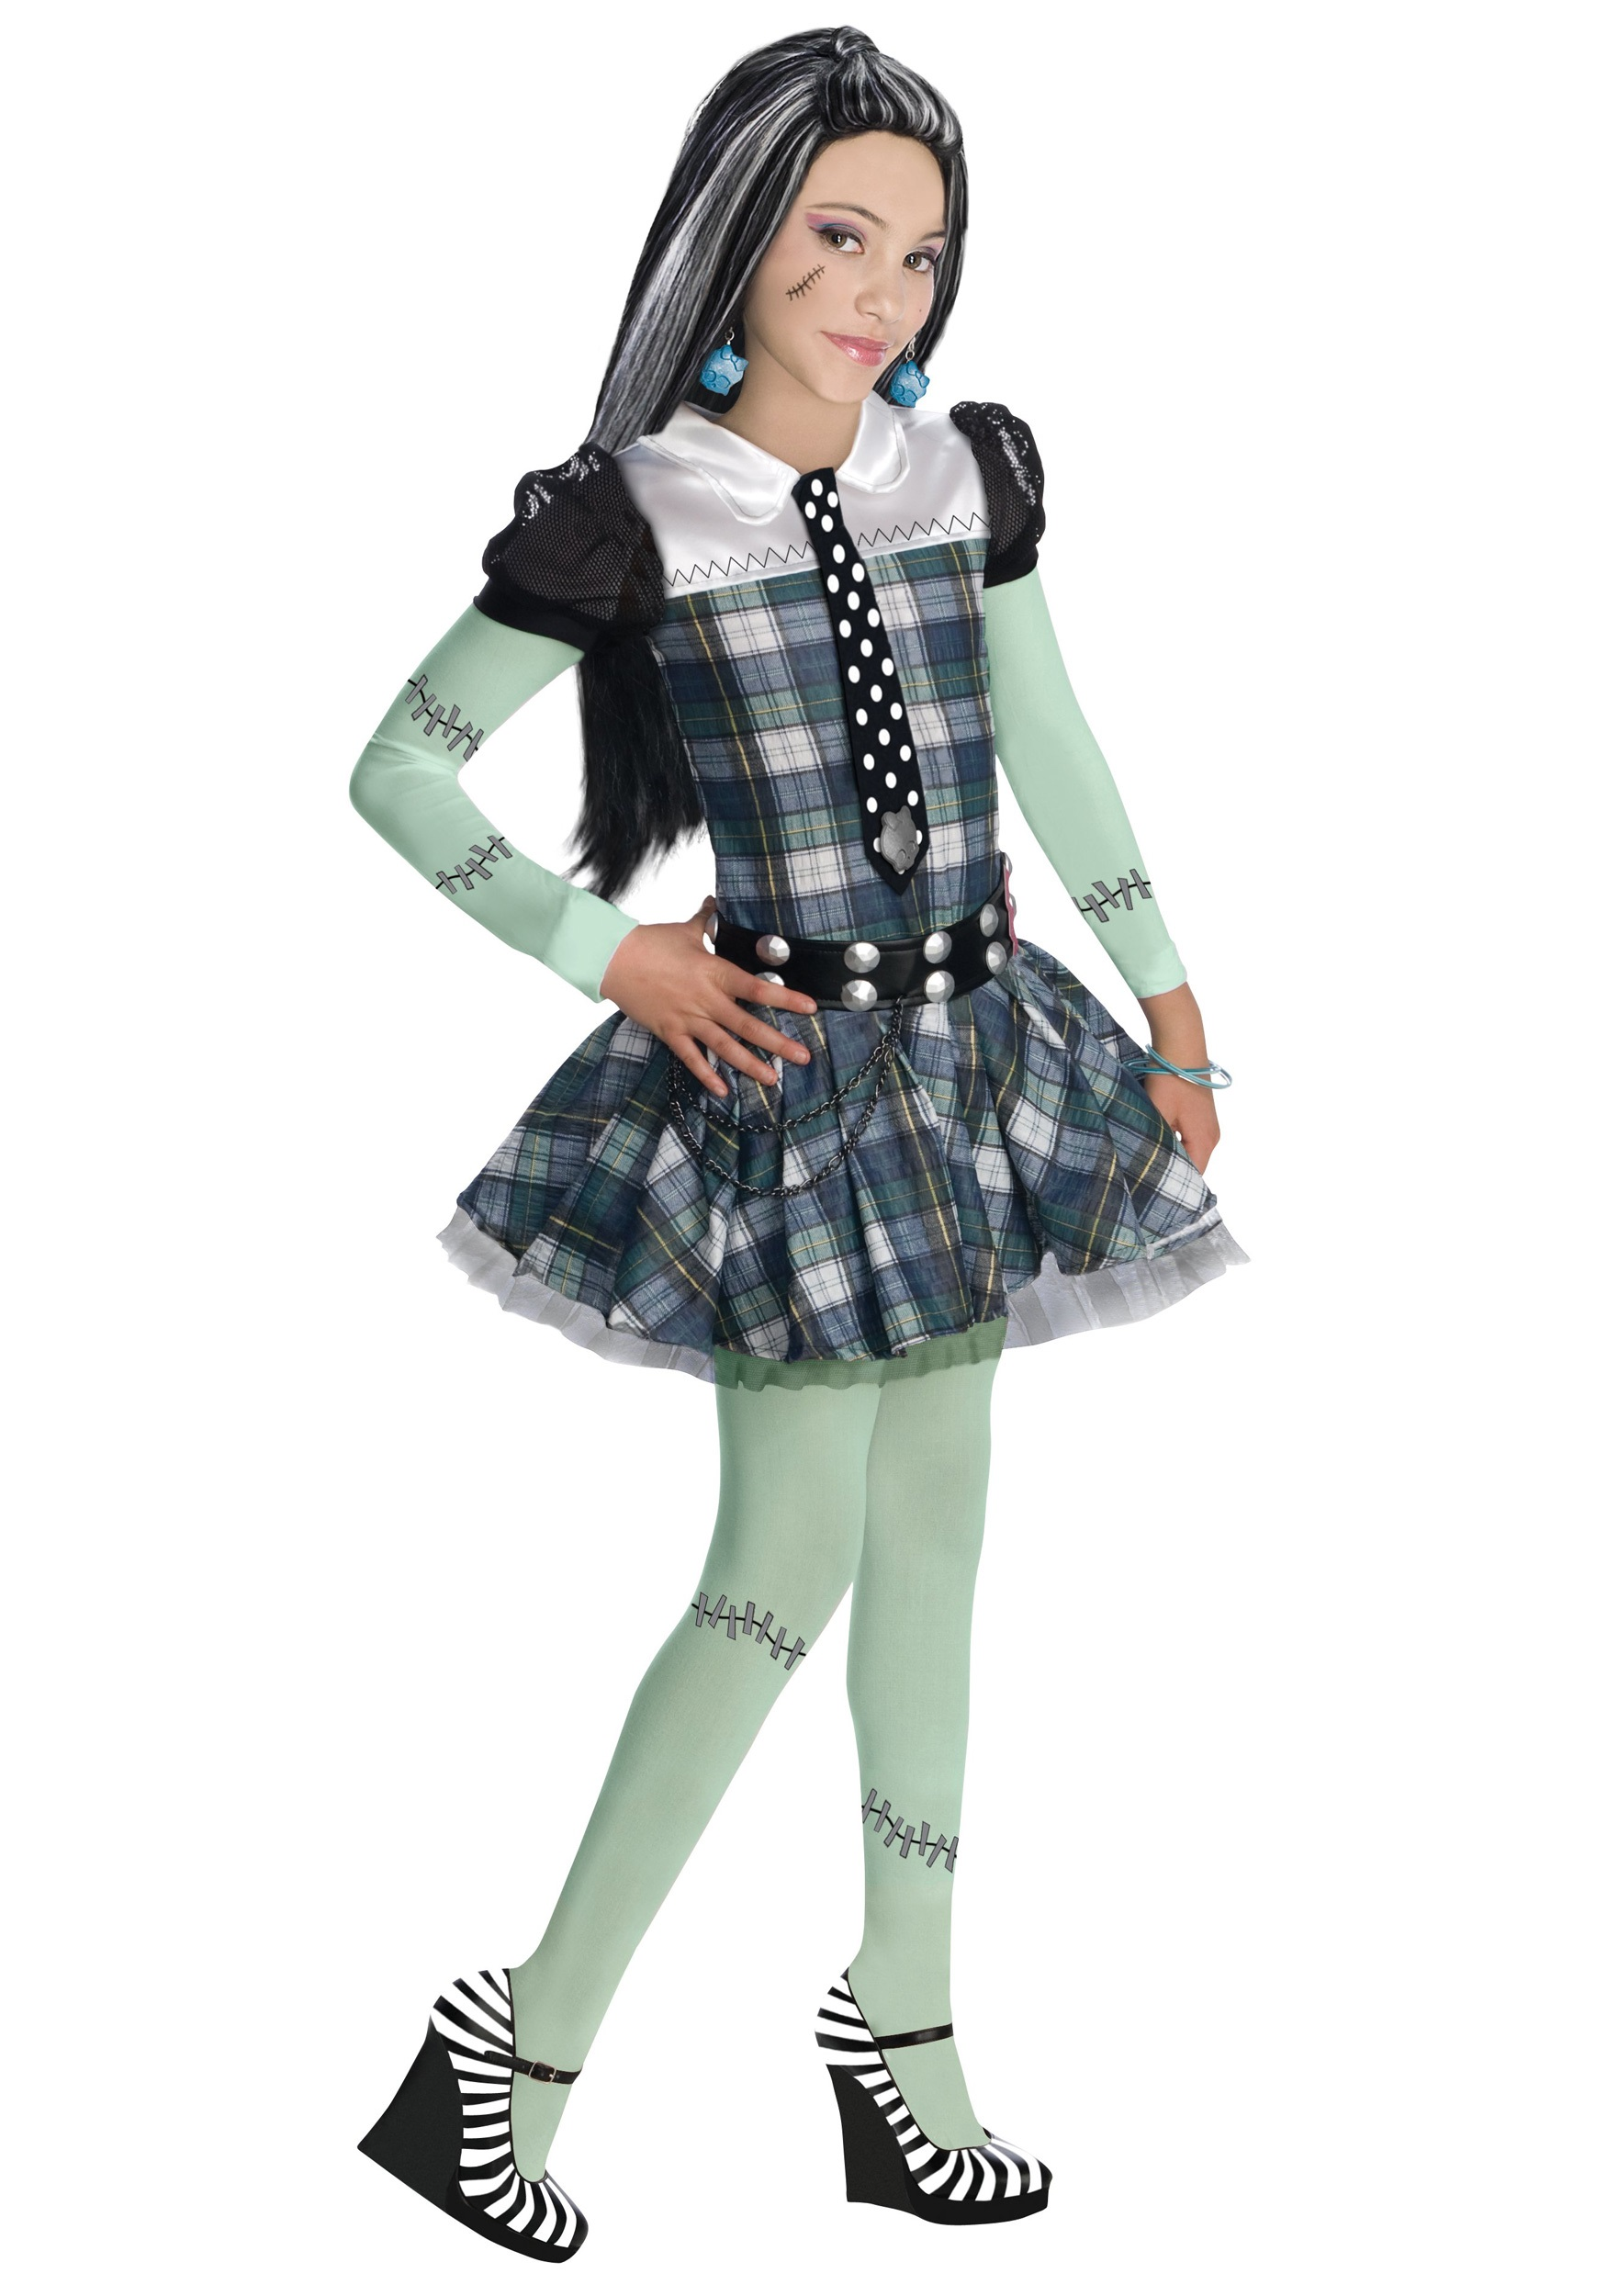 Monster High Skelita Calaveras Child Costume. $29.99 · Frankie Stein Costume  sc 1 st  Halloween Costumes & Monster High Costumes u0026 Accesories - HalloweenCostumes.com